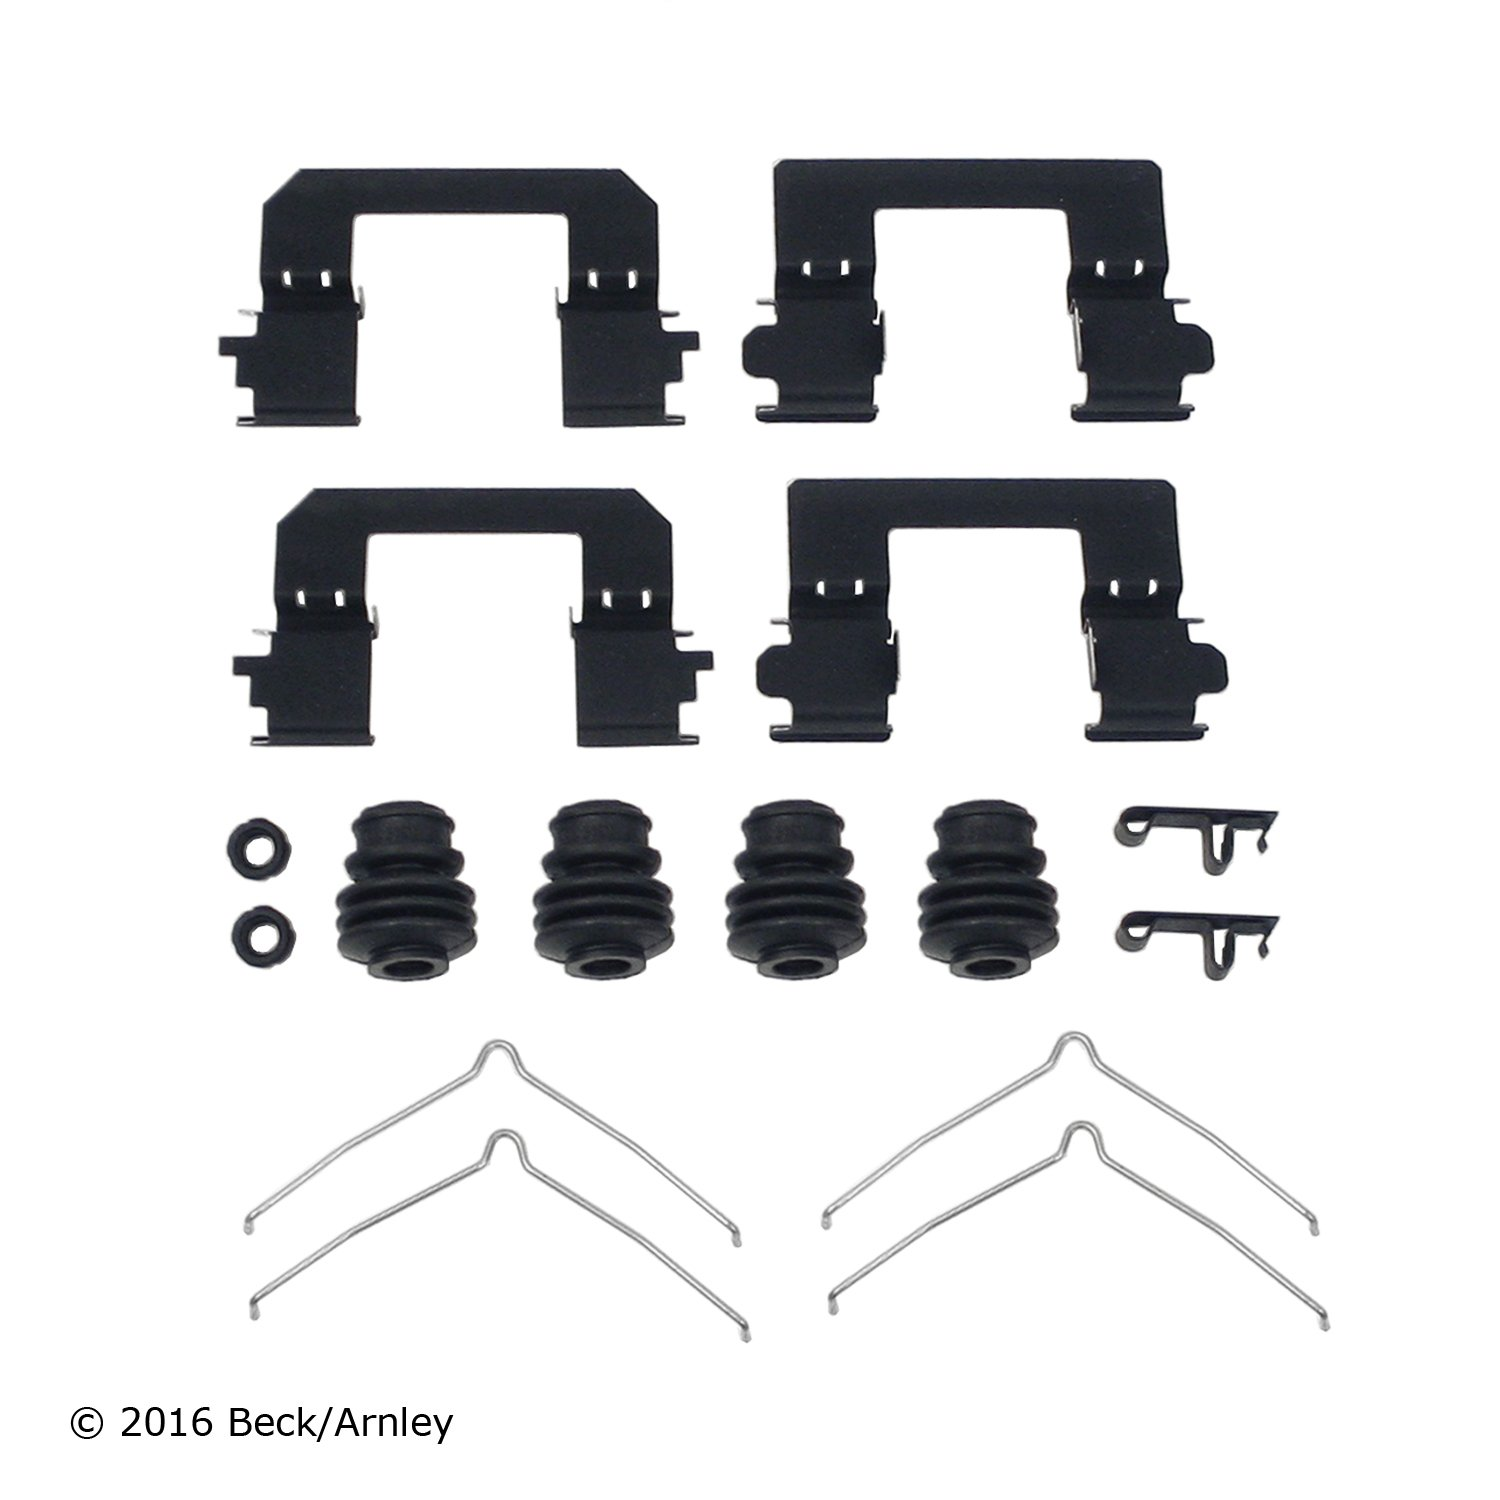 Carlson 13399Q Rear Disc Brake Hardware Kit